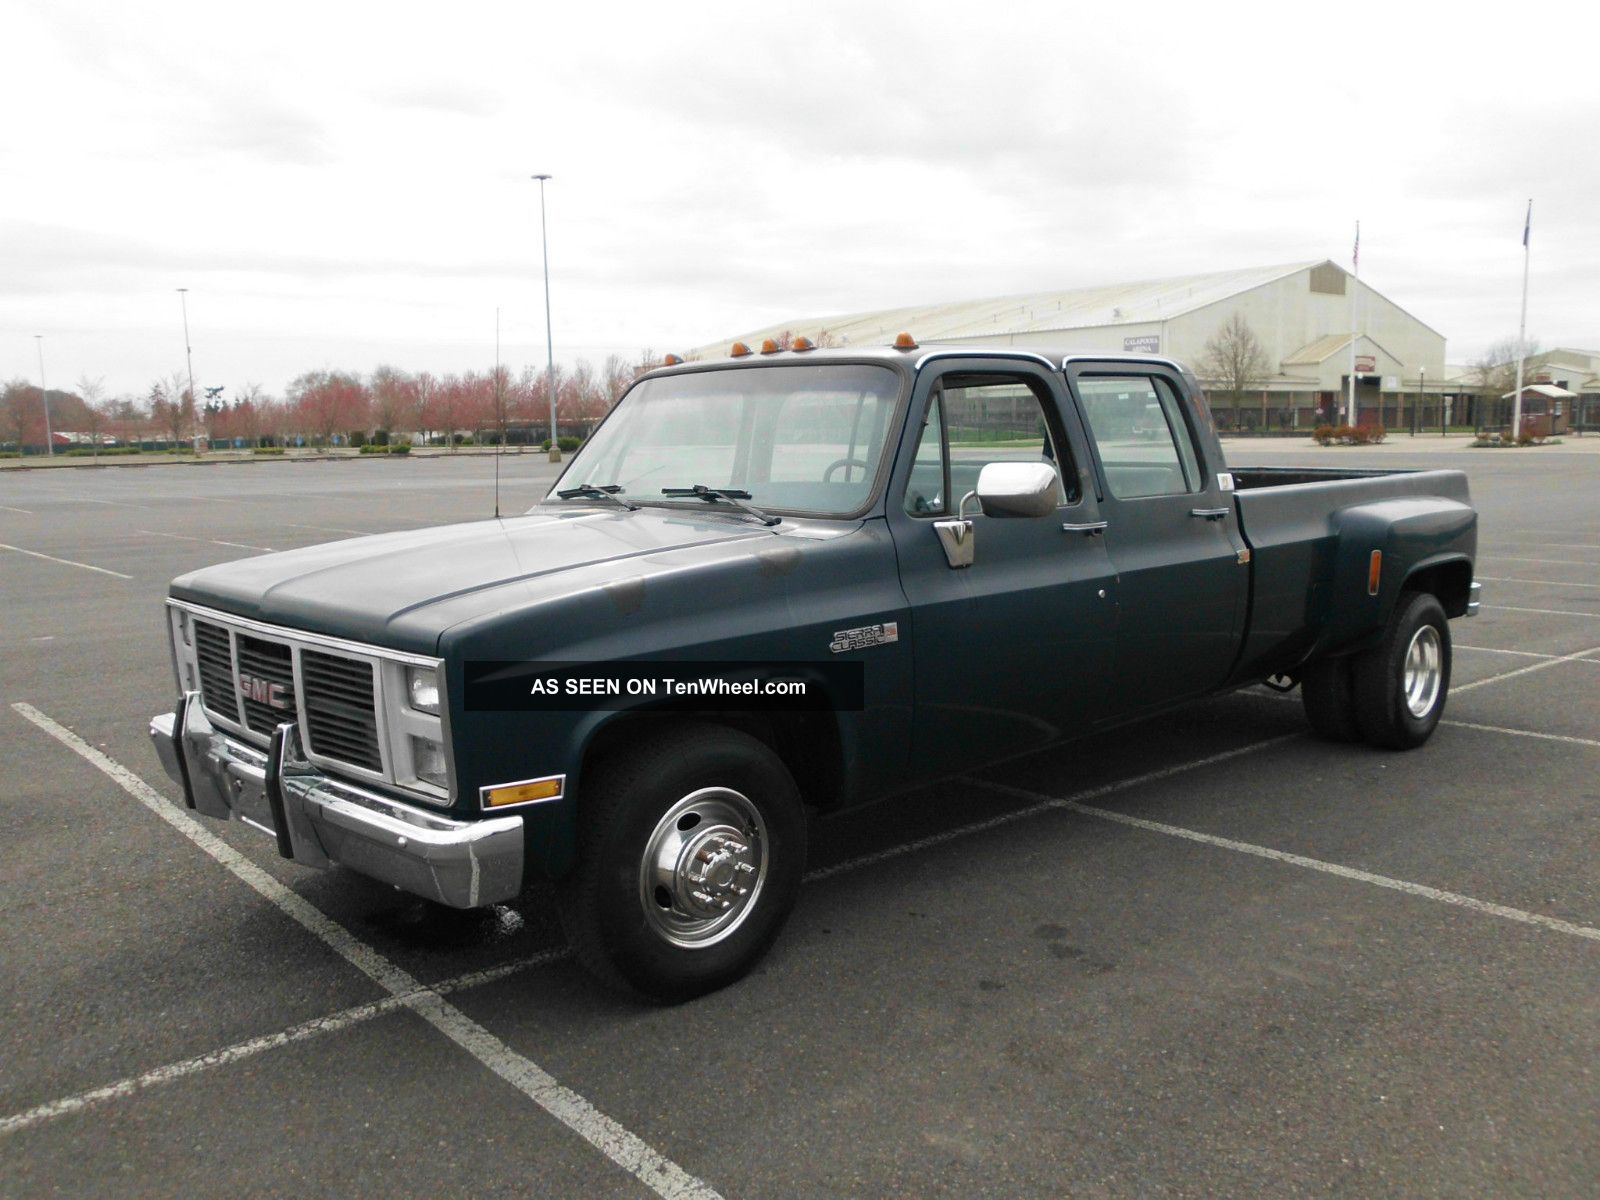 - - - 1988 Chevrolet 3500 Crew Cab Dually 454 3+3 R35 - - - - - Silverado Crewcab - - C/K Pickup 3500 photo